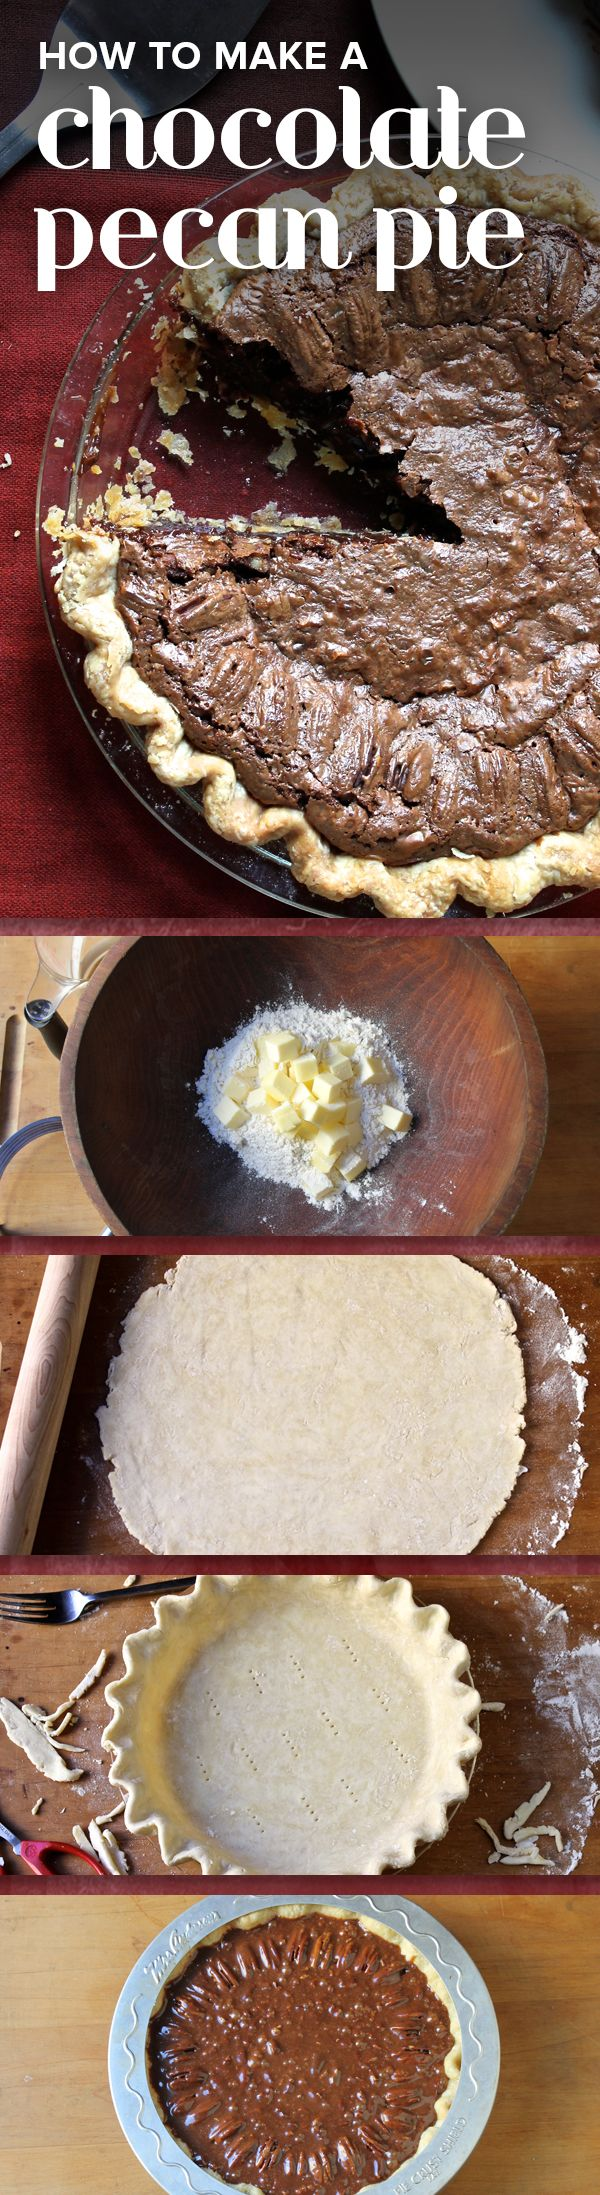 93 best Pies images on Pinterest   Pie recipes, Recipes and ...